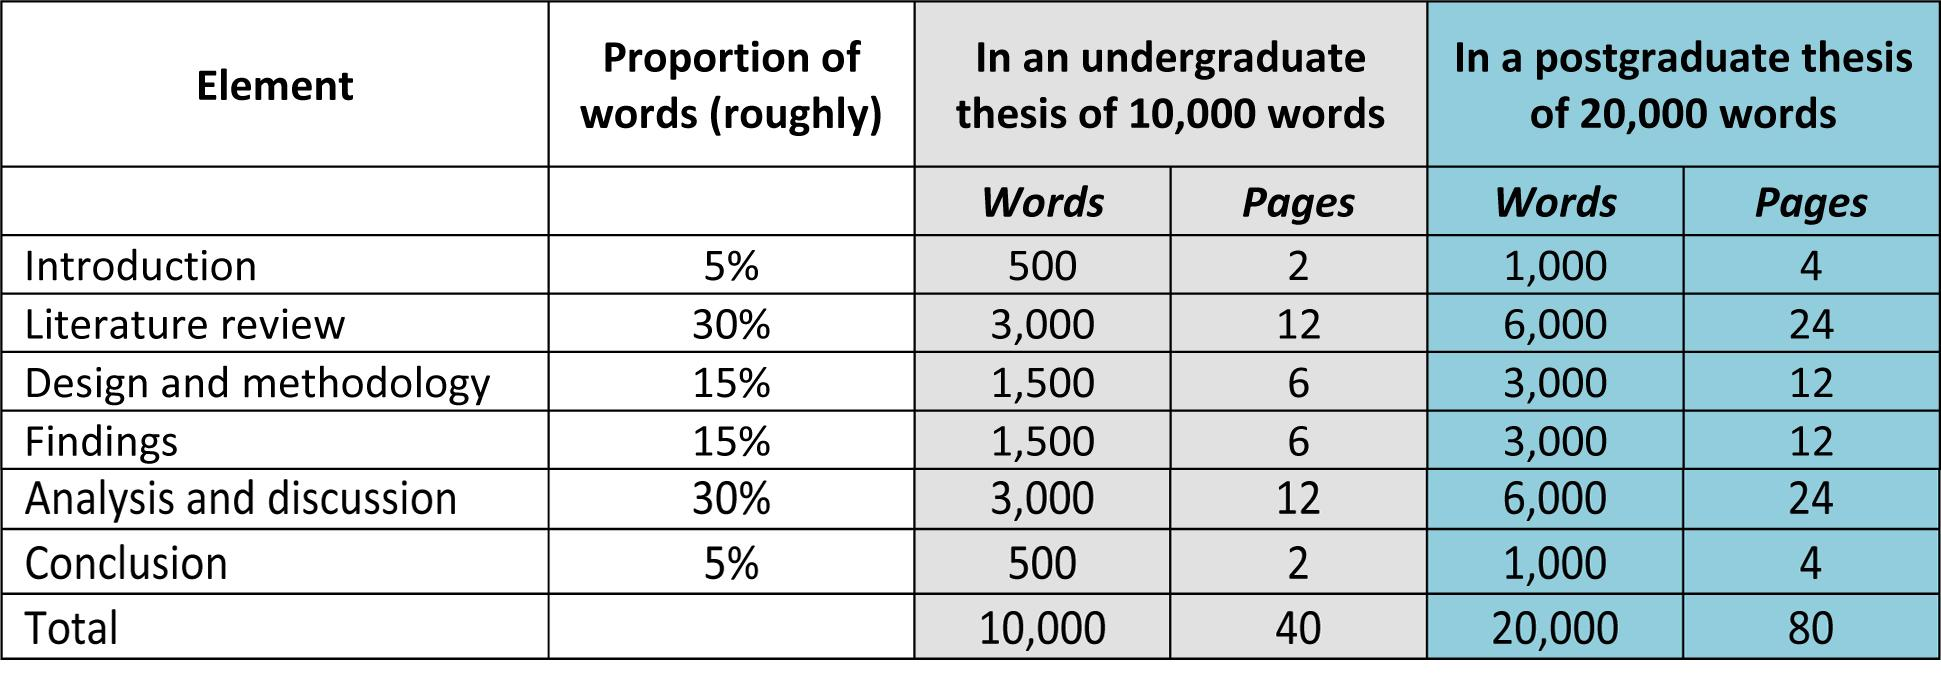 dissertation word count breakdown